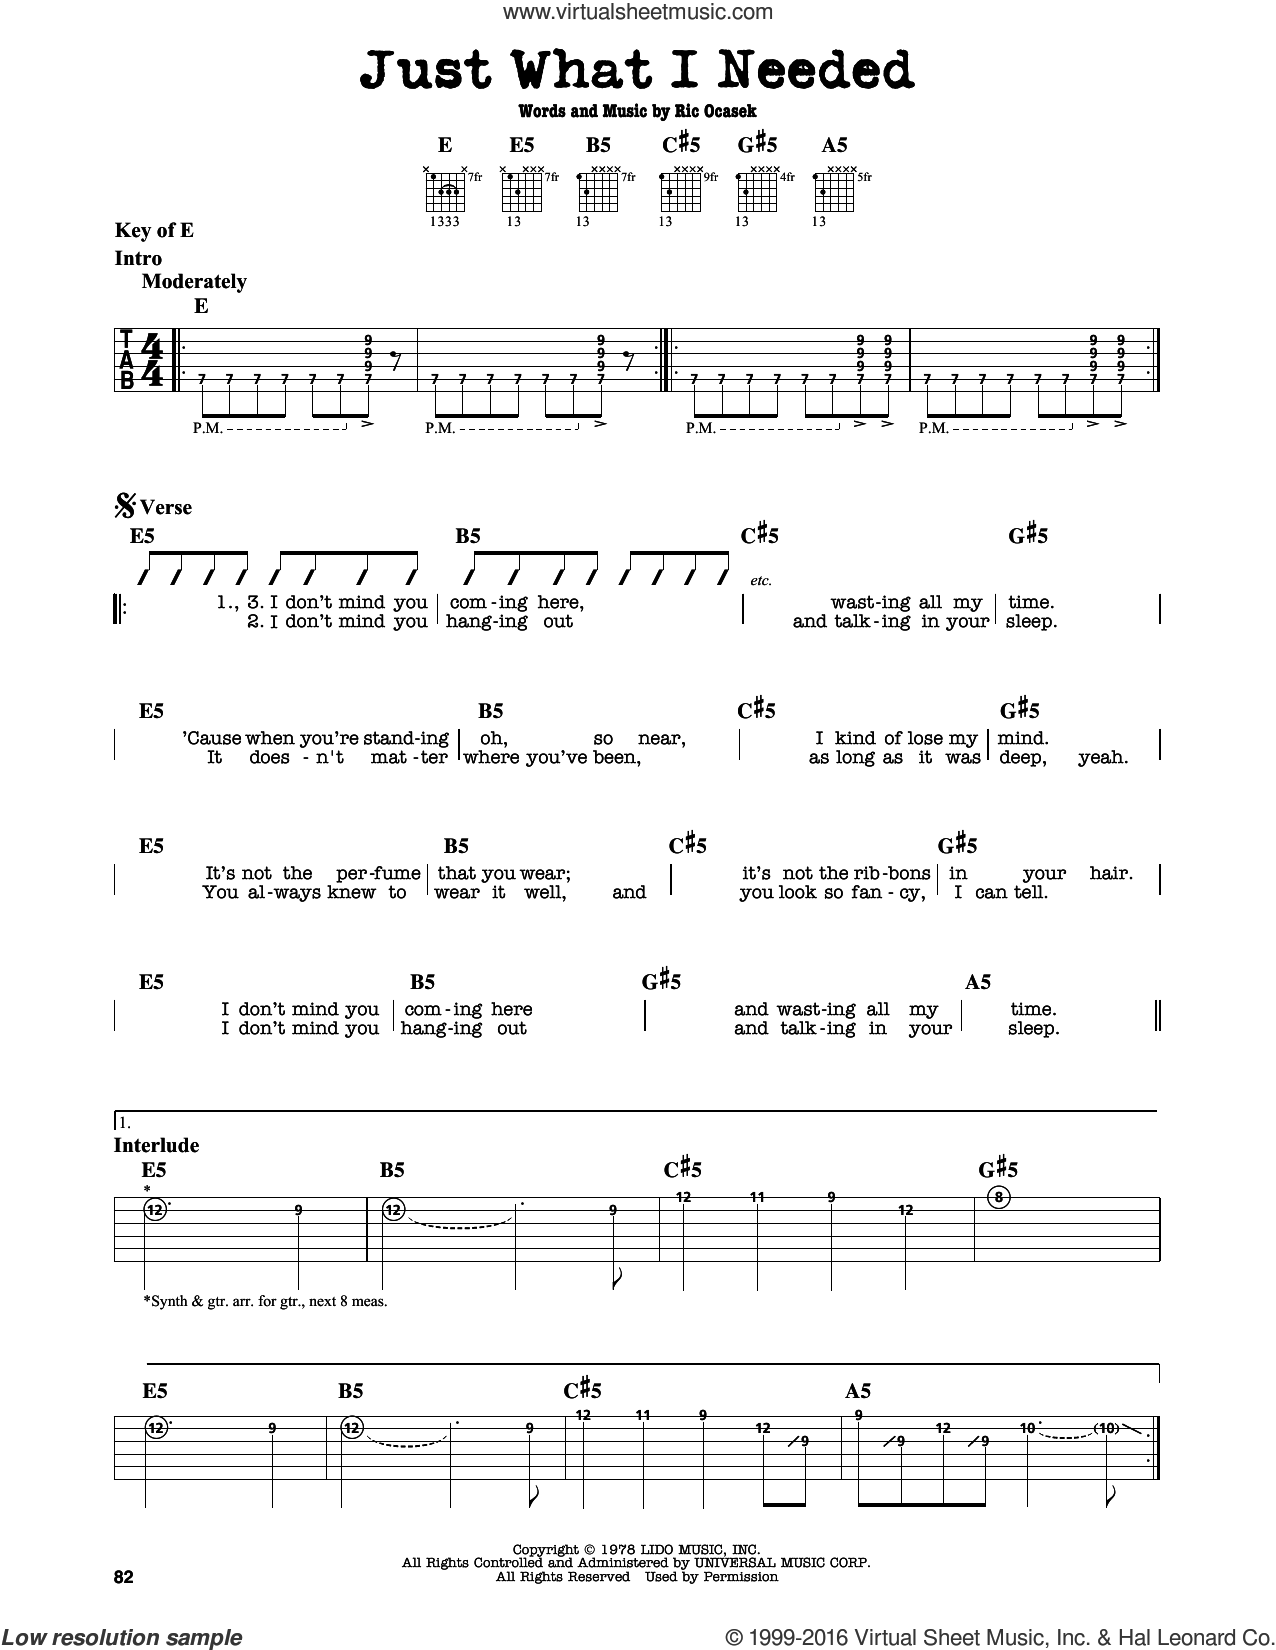 Just What I Needed sheet music for guitar solo (lead sheet) by The Cars, intermediate guitar (lead sheet). Score Image Preview.